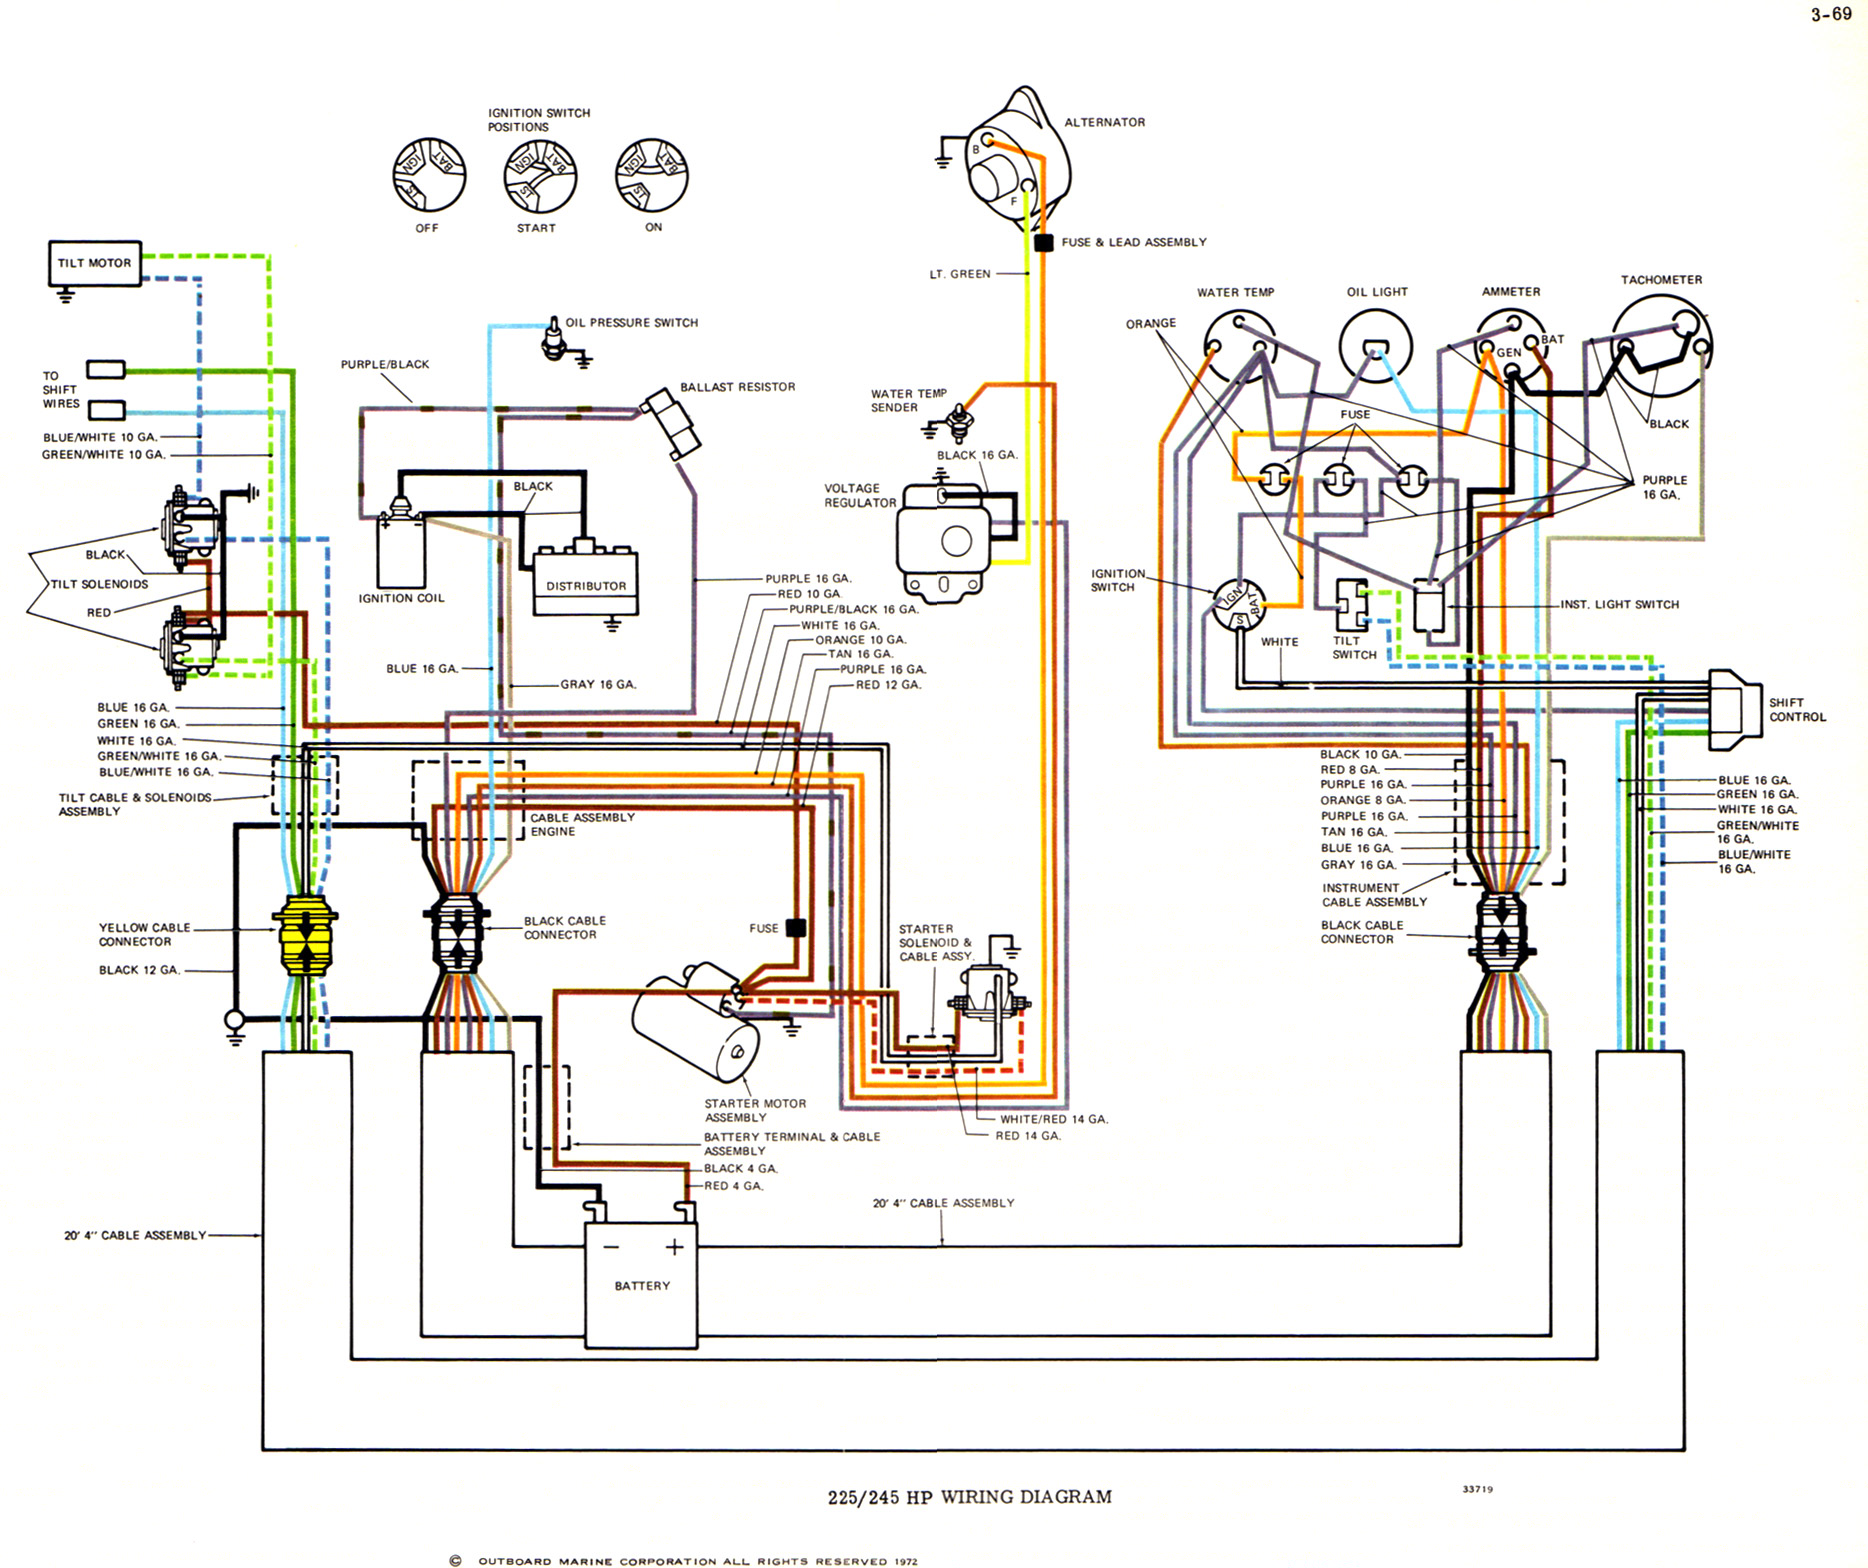 73_OMC_V8_all_big omc boat technical info omc wiring harness diagram at pacquiaovsvargaslive.co